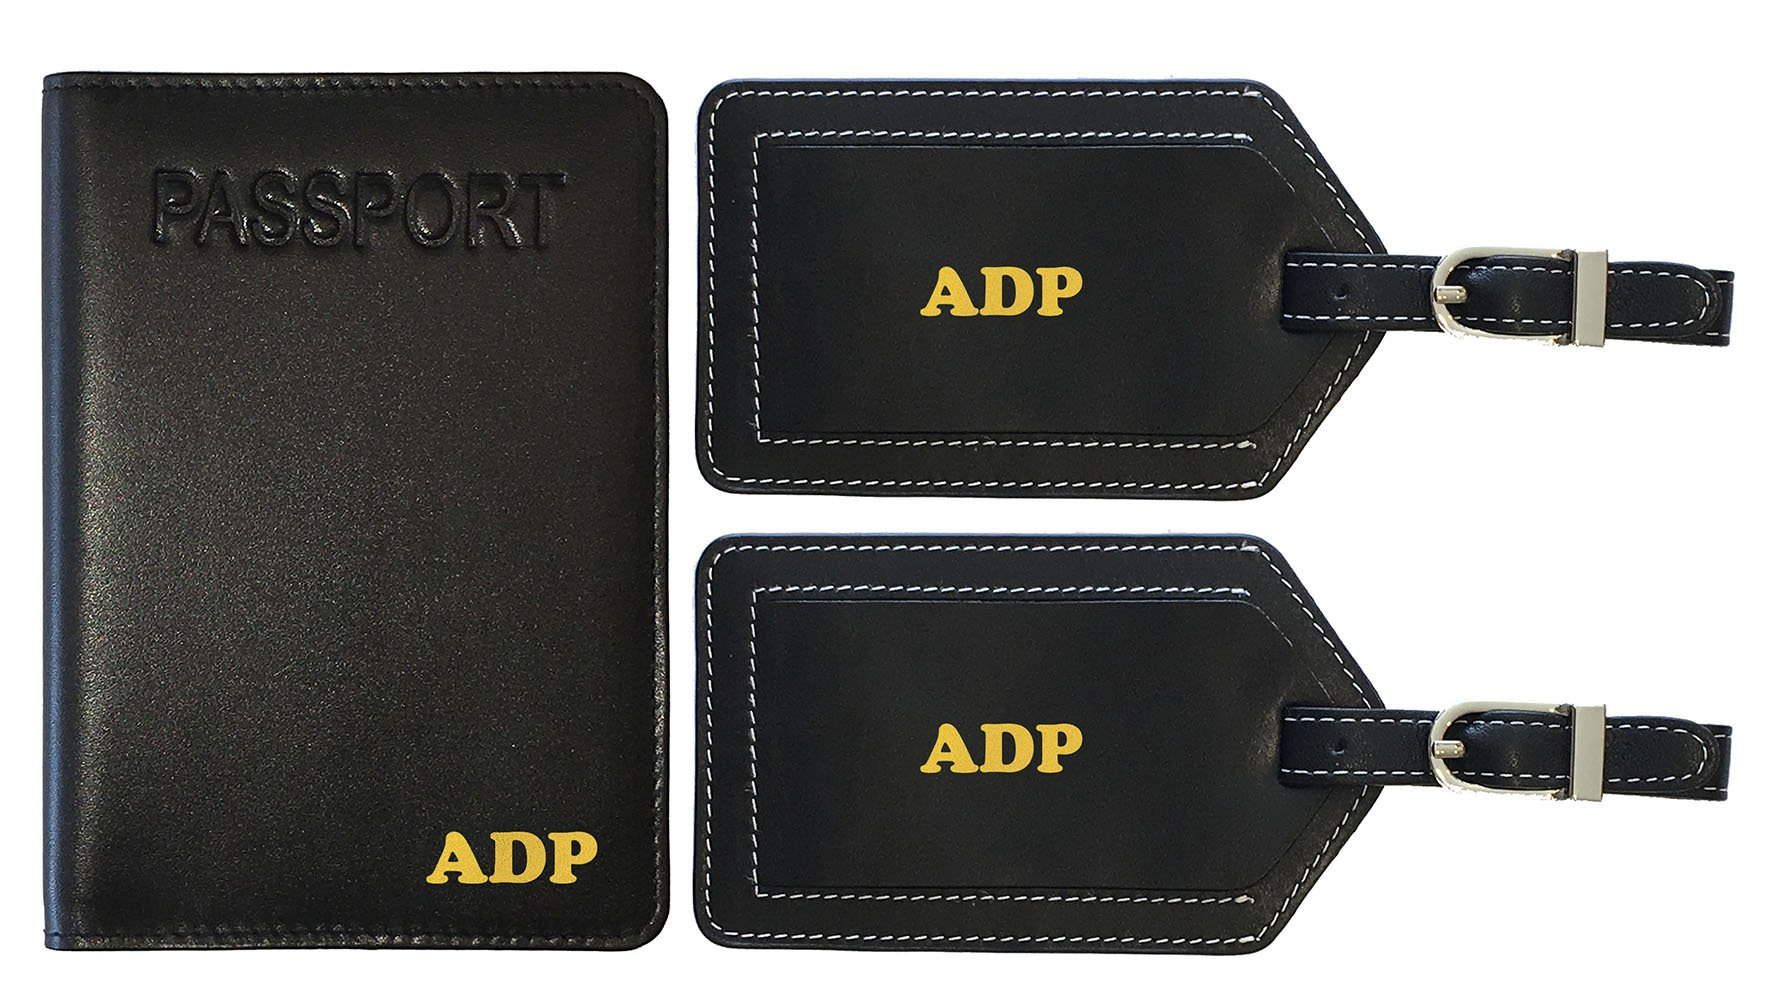 Personalized Monogrammed Black Leather RFID Passport Cover Holder and 2 Luggage Tags by 123 Cheap Checks